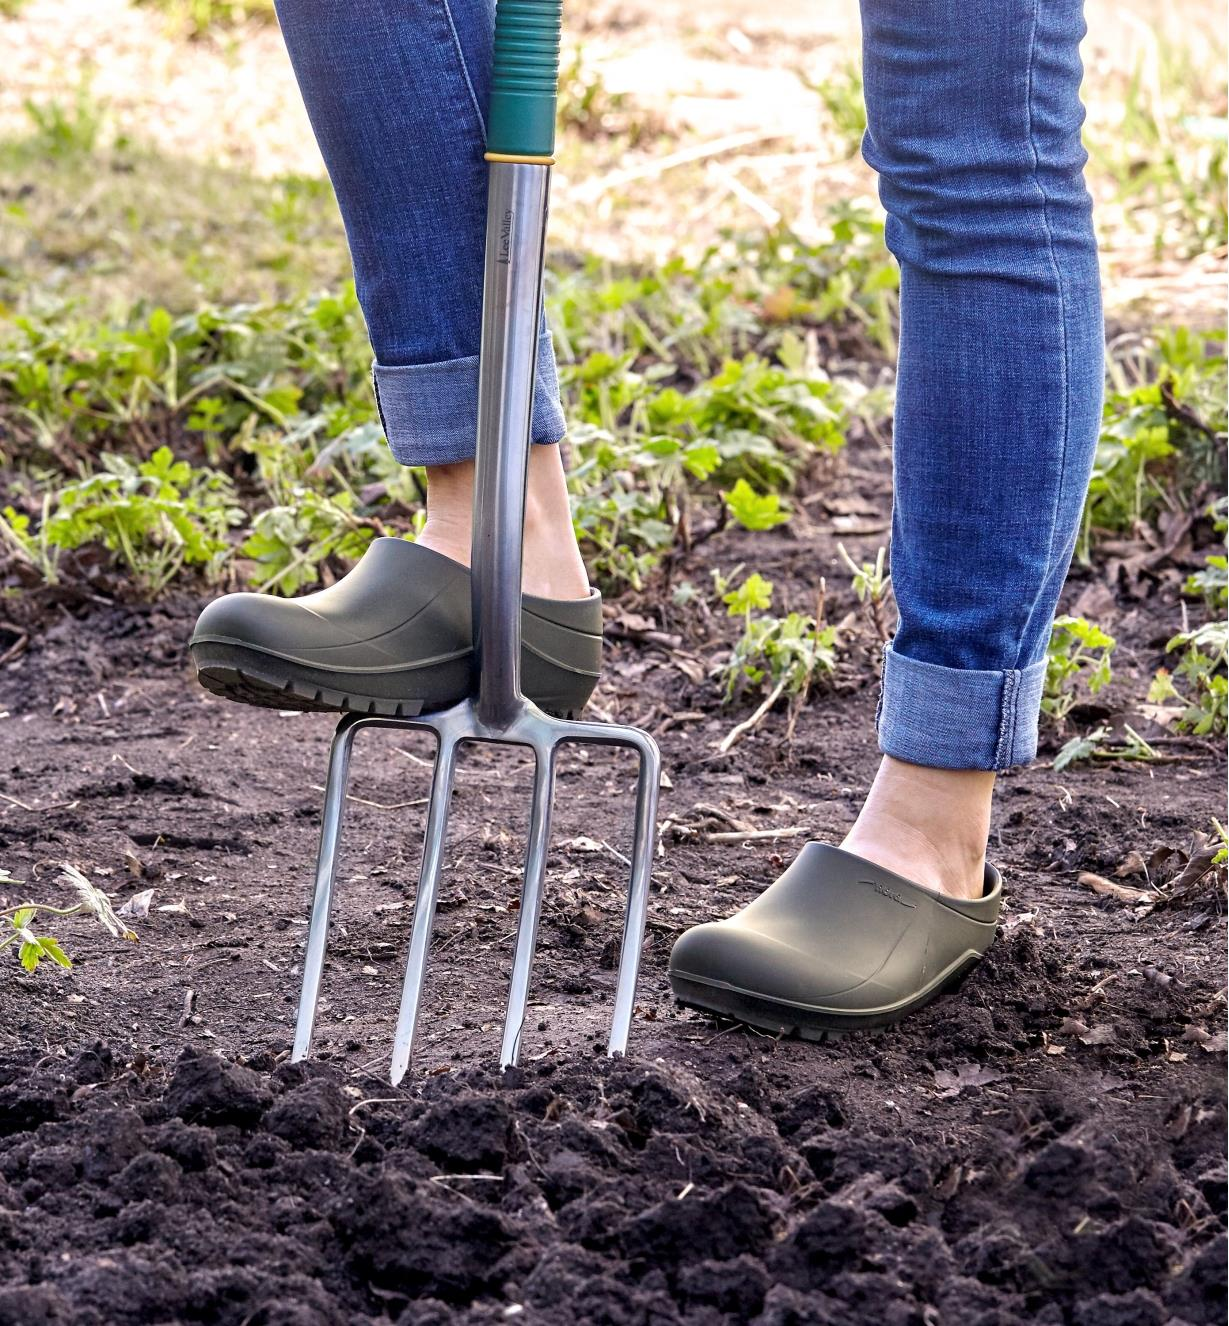 Stepping on the back edge of a stainless-steel digging fork to press it into the soil